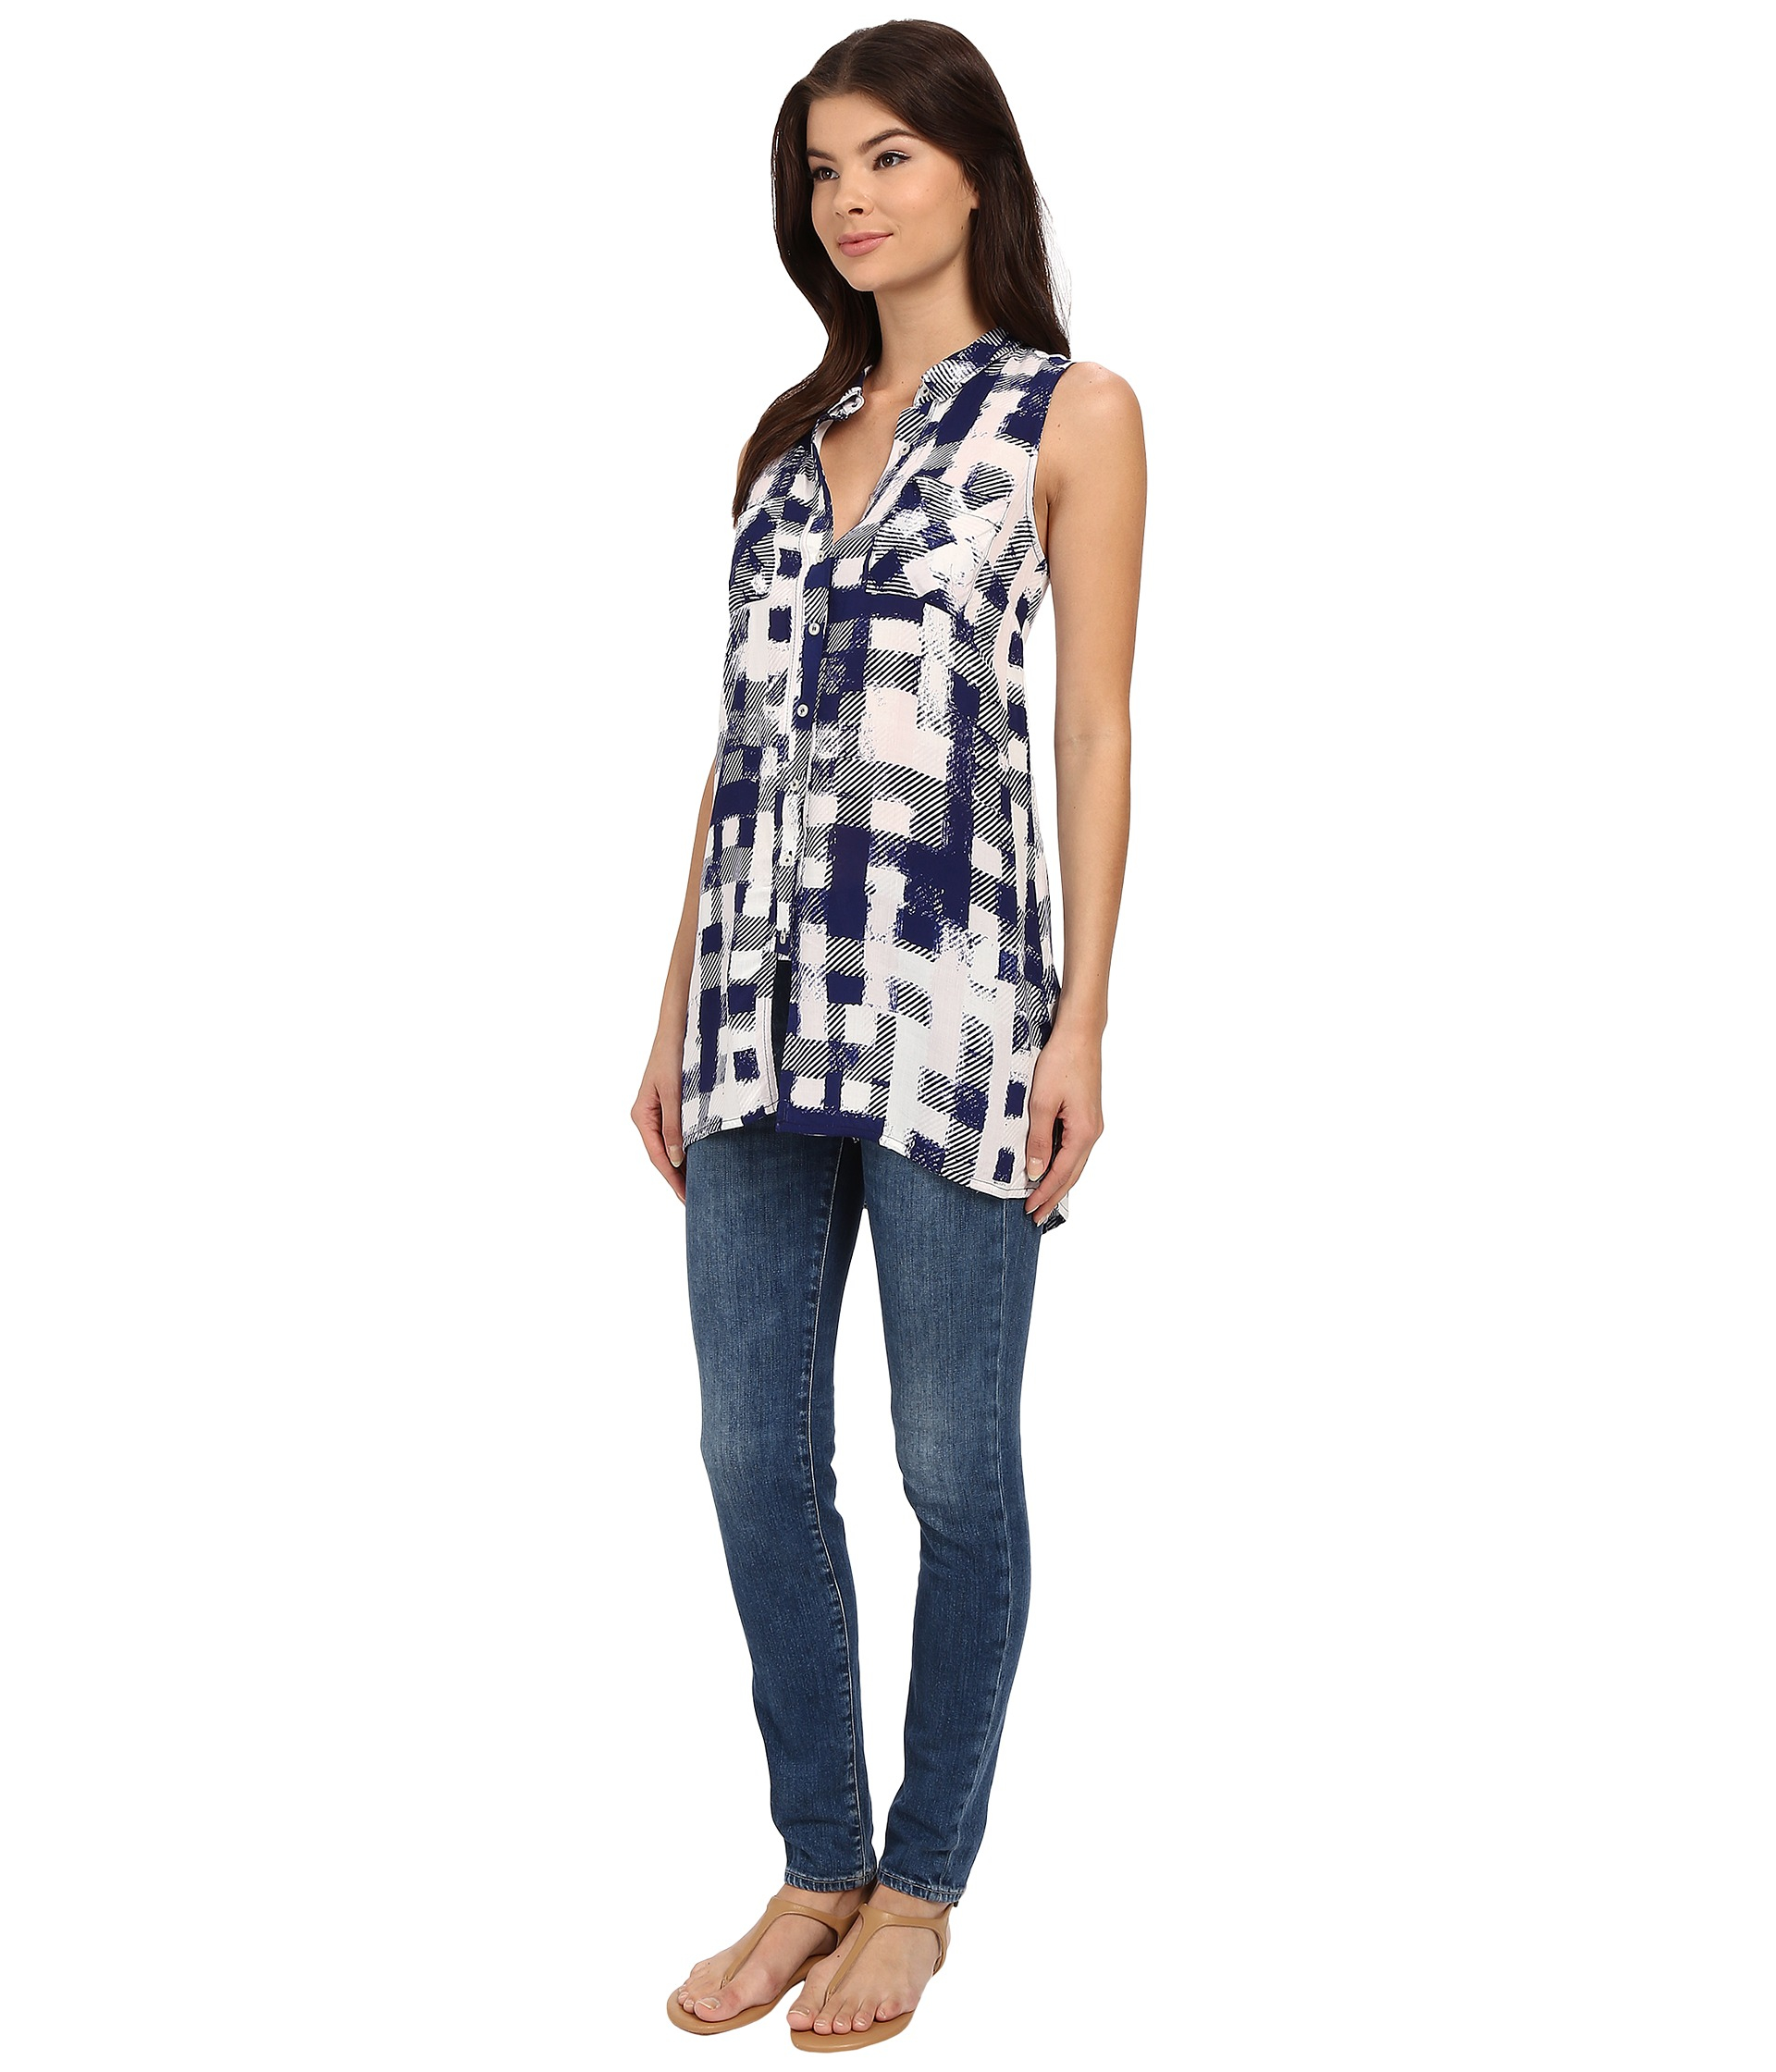 e58a1d6c03afe Lyst - Brigitte Bailey Berry Plaid Tunic in Black